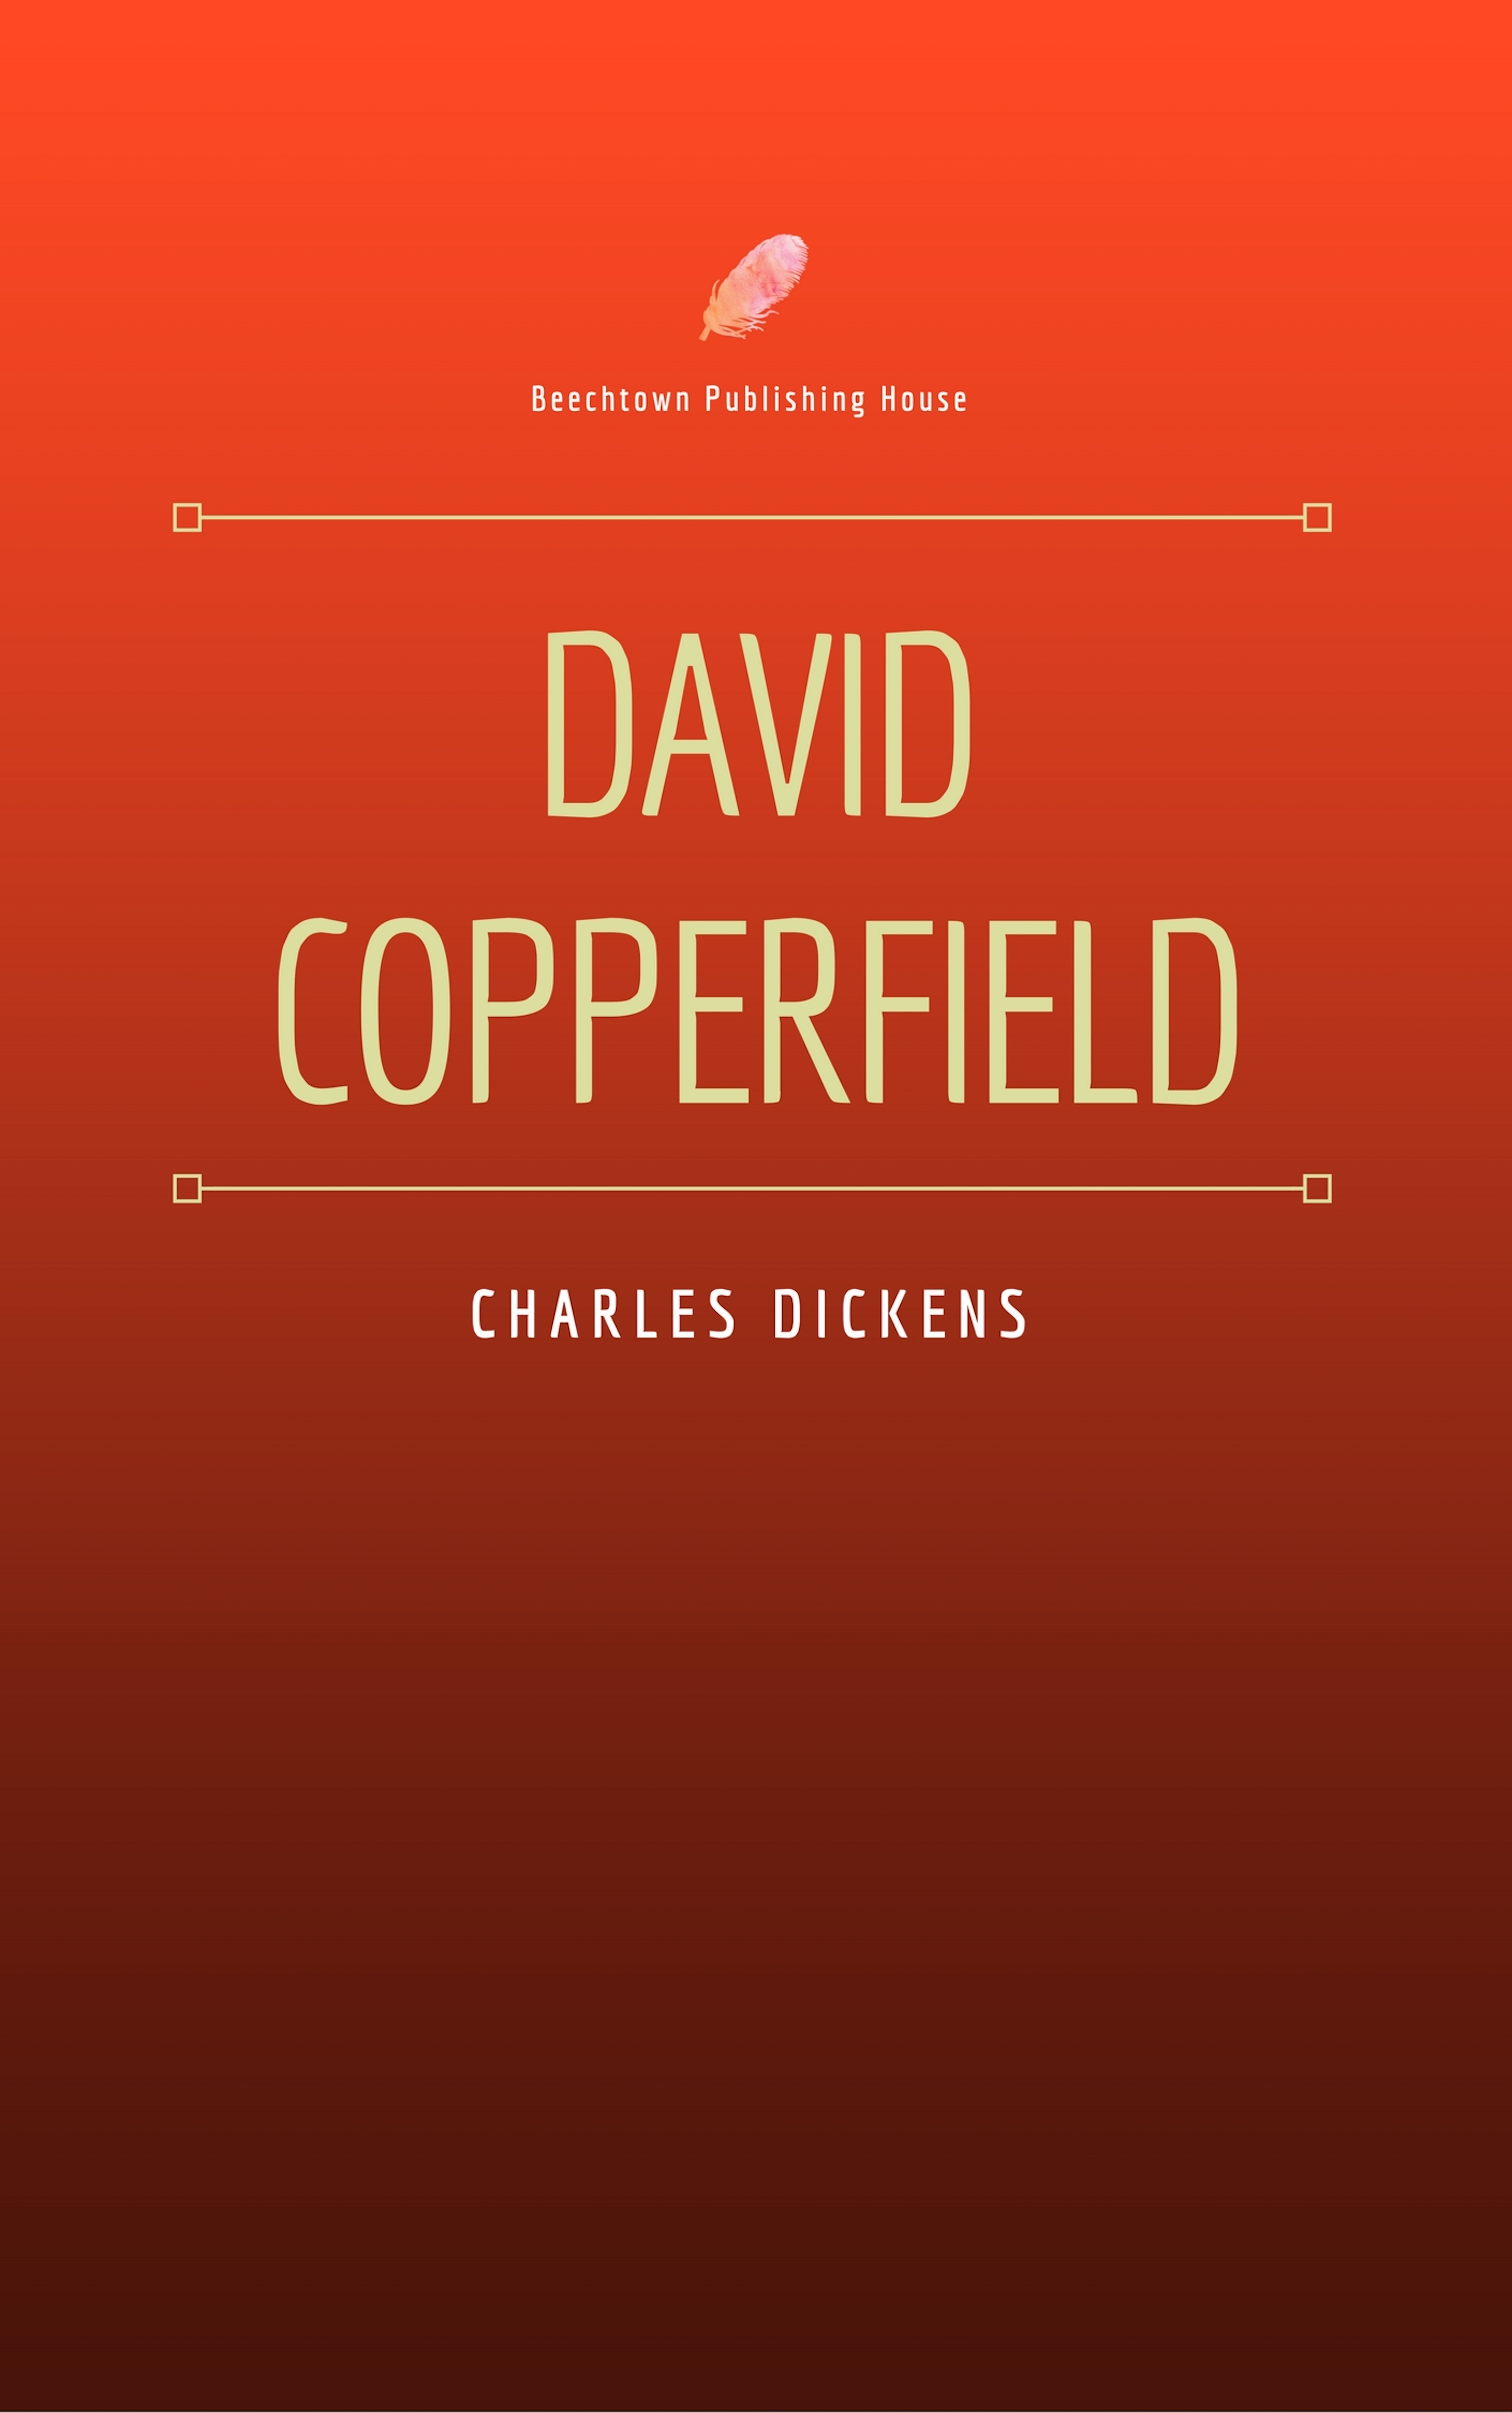 Charles Dickens David Copperfield (Beechtown Publishing House) zimbell house publishing elemental foundations a zimbell house anthology